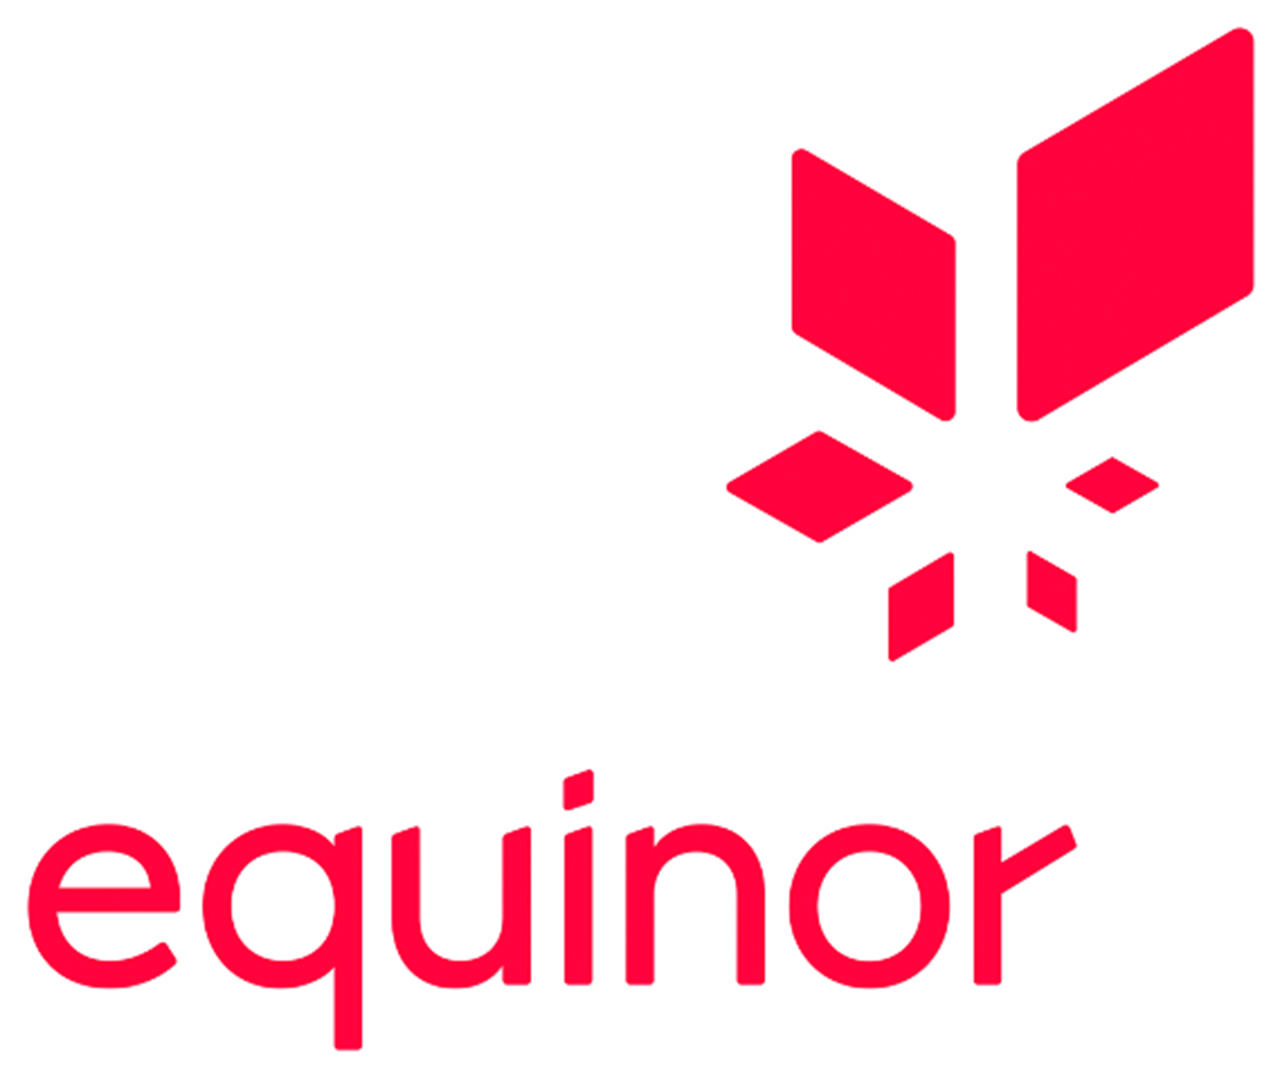 Microsoft to deliver cloud services to Equinor from Norway datacenters